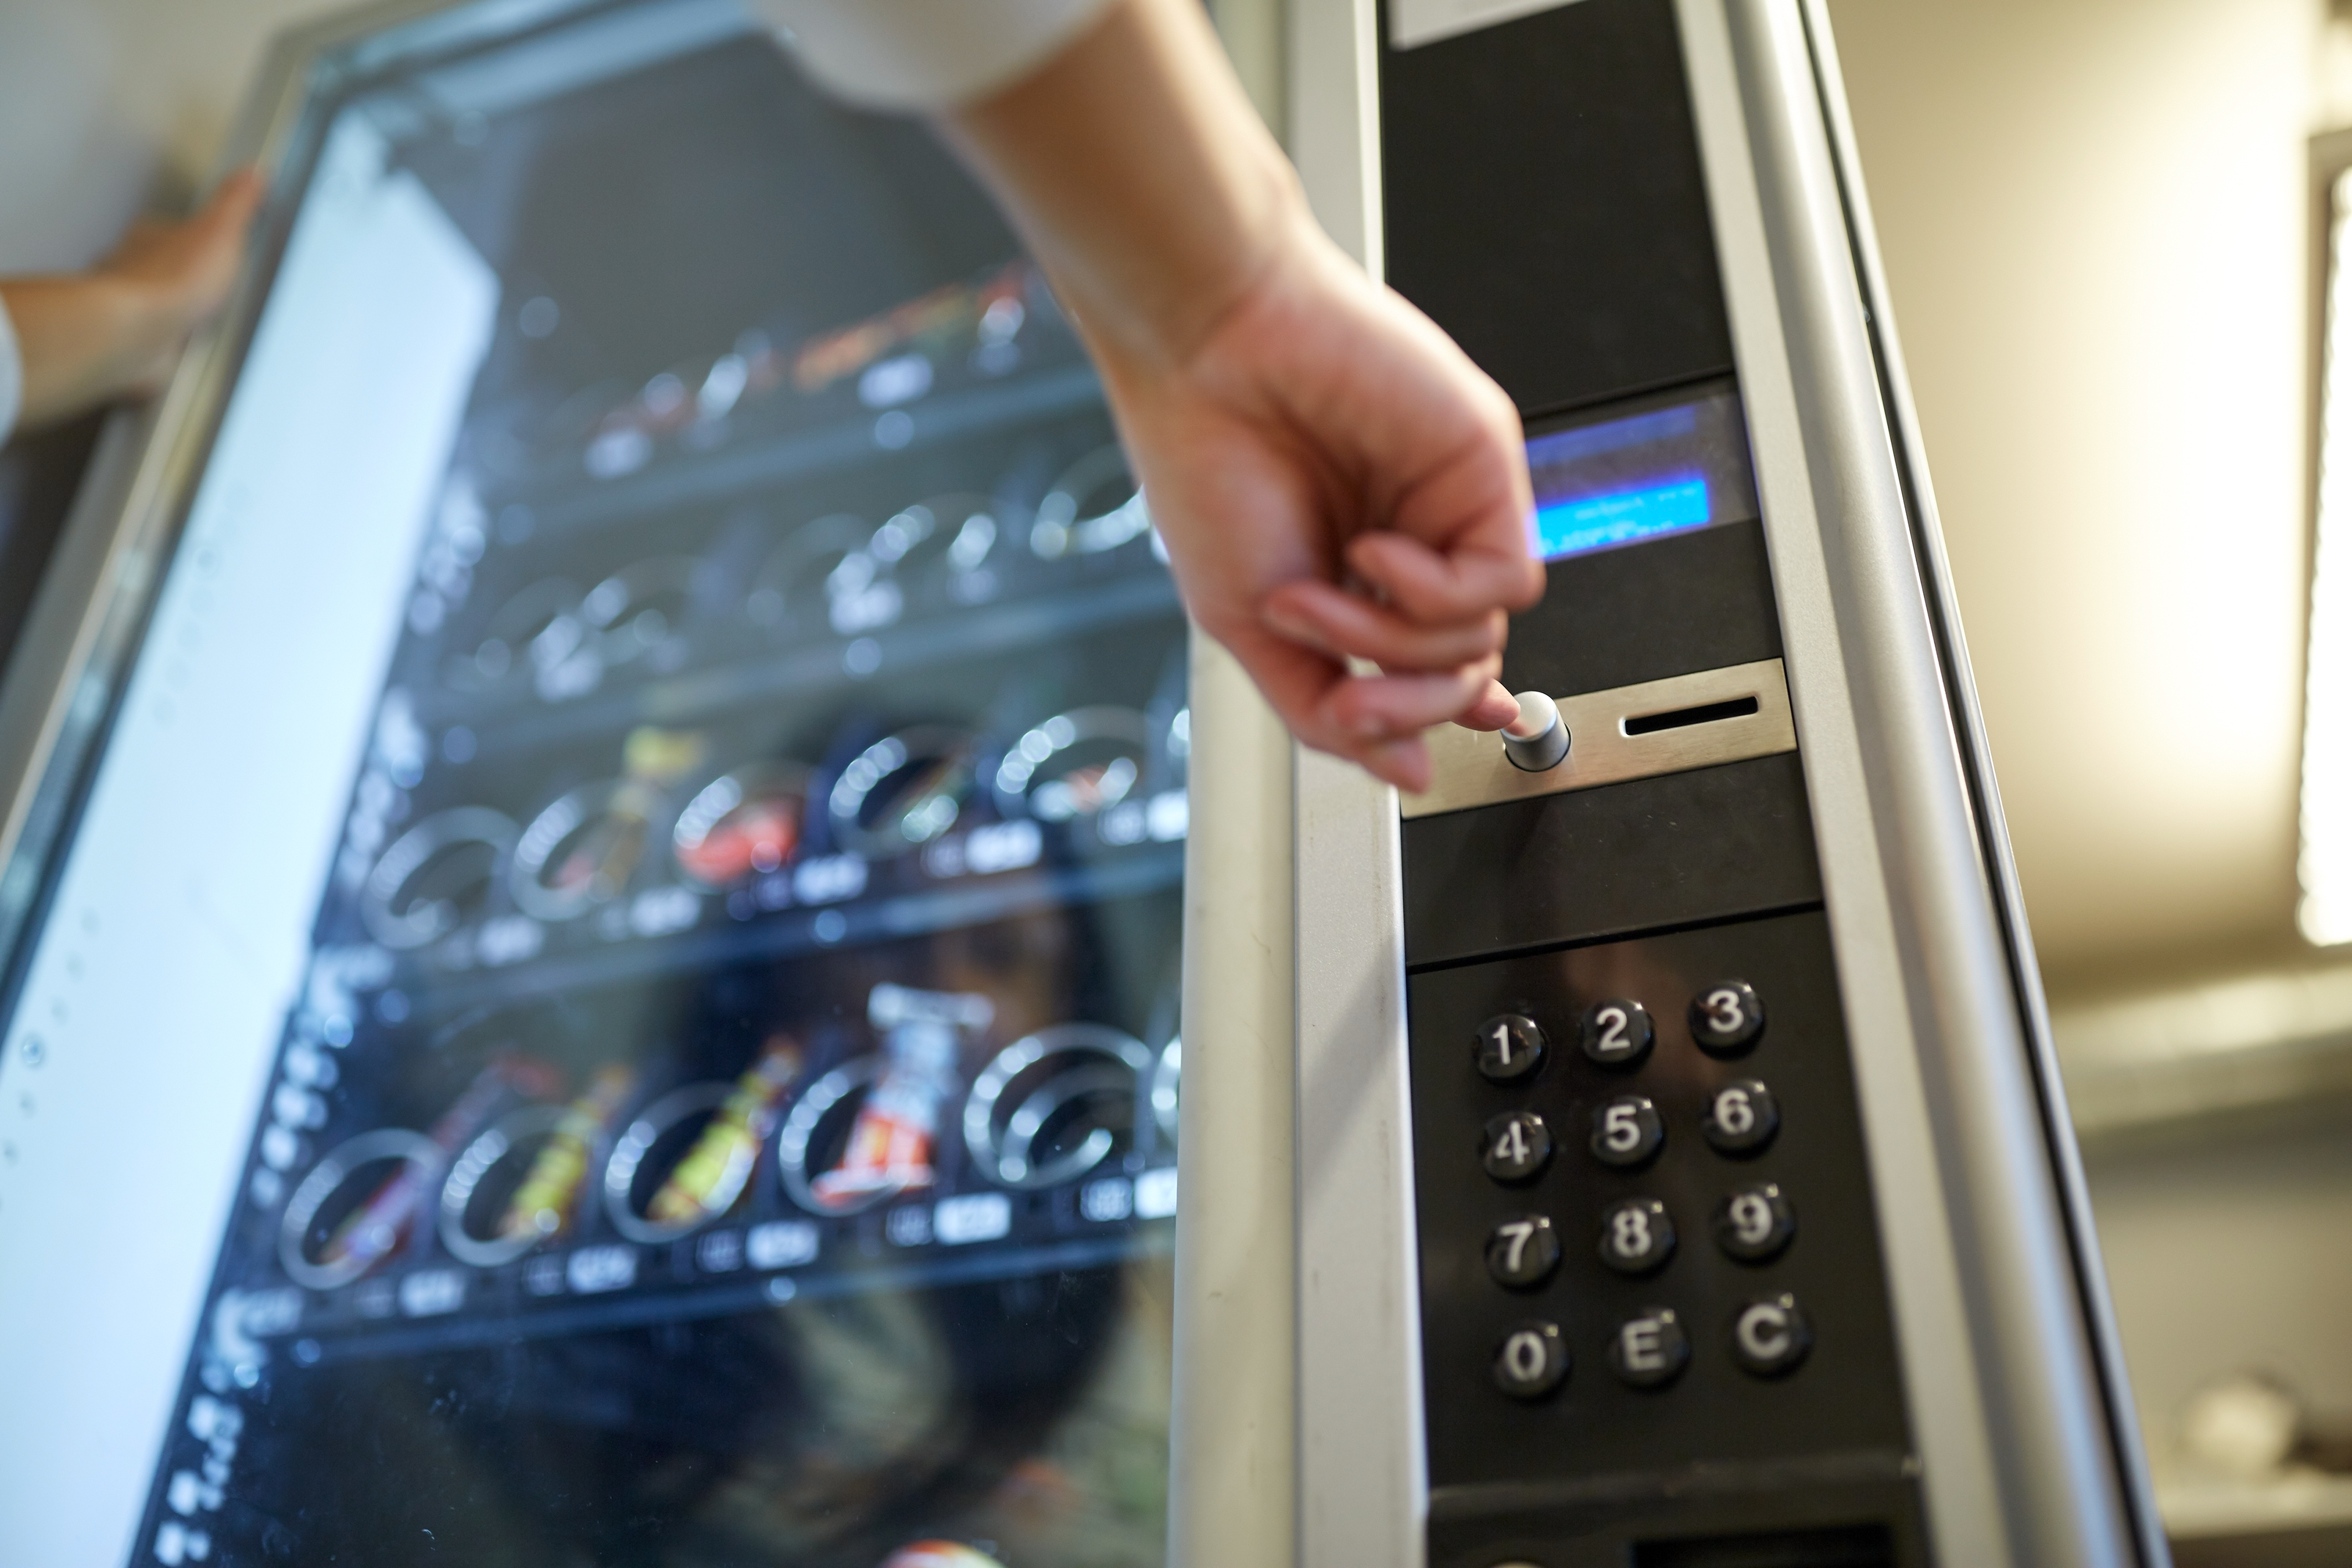 Vending Machine Equipment Leasing